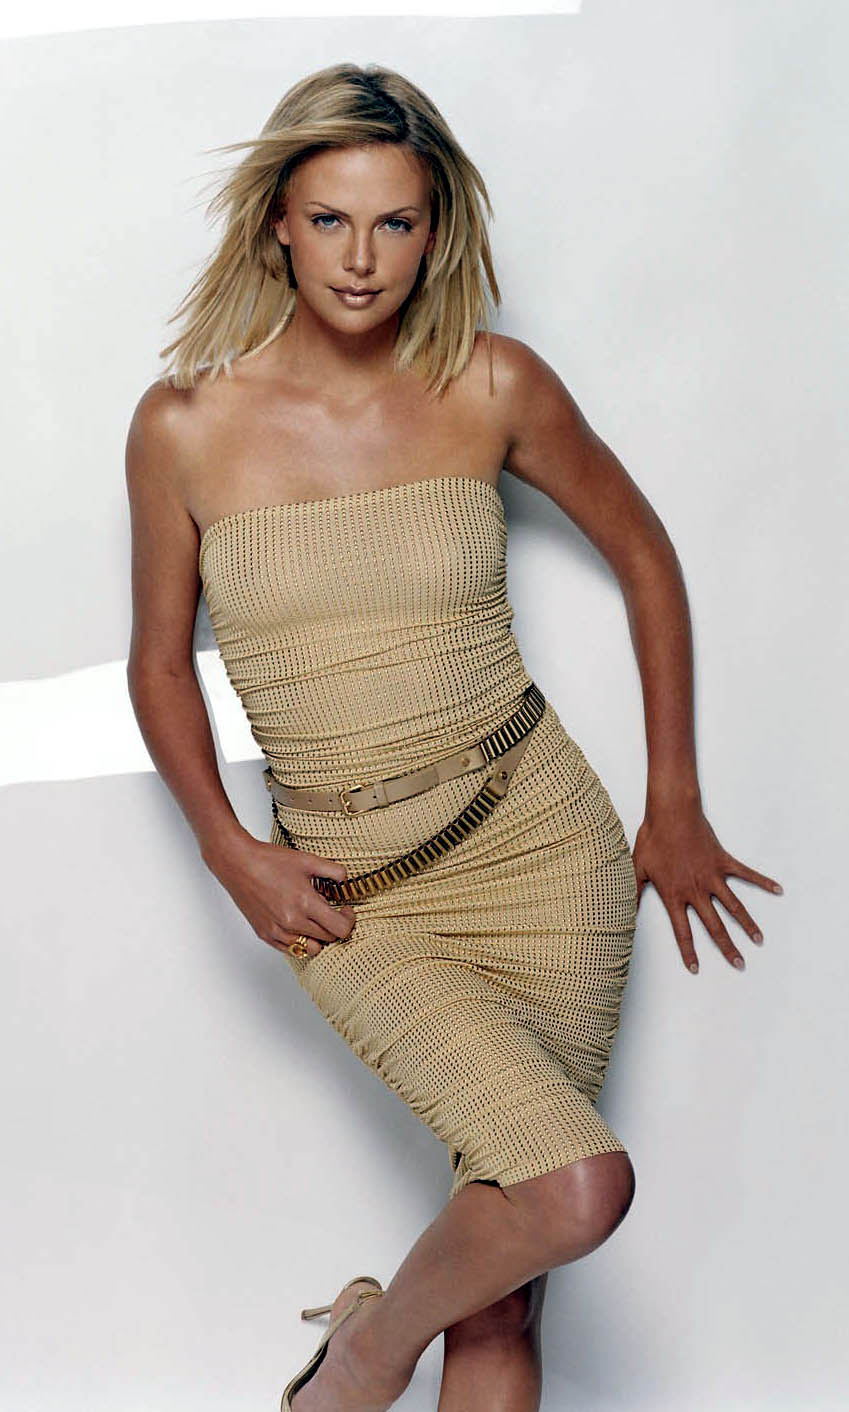 CHARLIZE THERON - First African Oscar winning actress! Charlize-theron-01